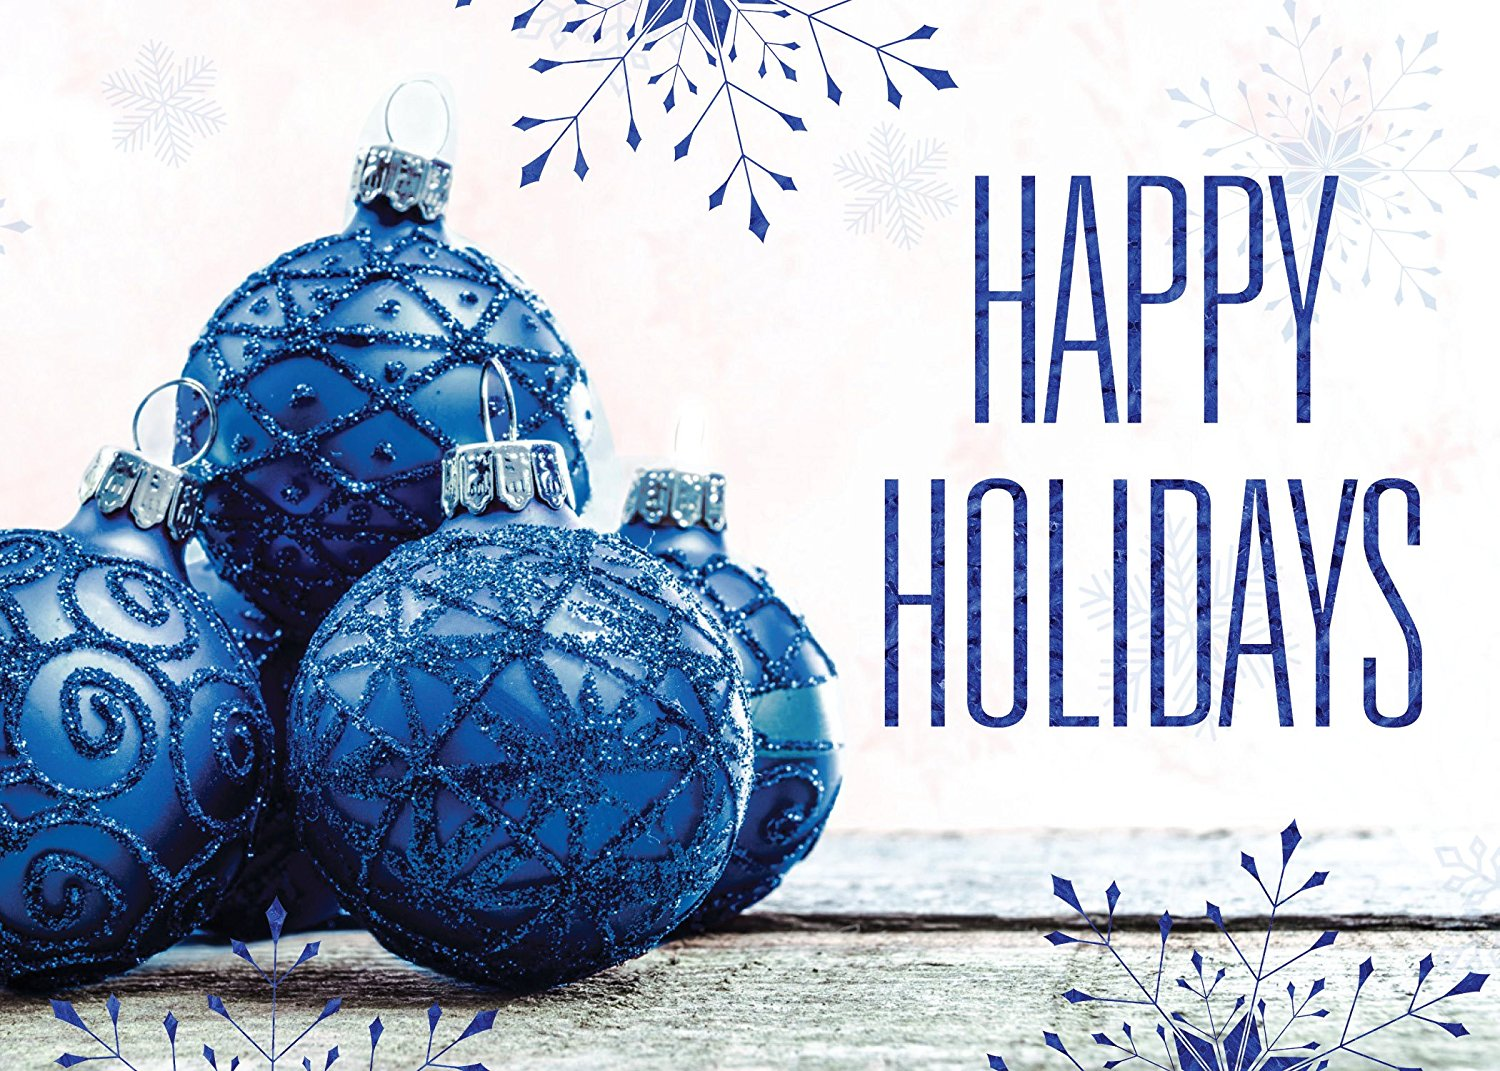 Holiday Foil Printed Greeting Cards - H1712. Greeting Card with Ornaments and Snowflakes and a Happy Holidays Message in Blue Foil. Box Set Has 25 Greeting Cards and 26 Silver Foil Lined Envelopes.